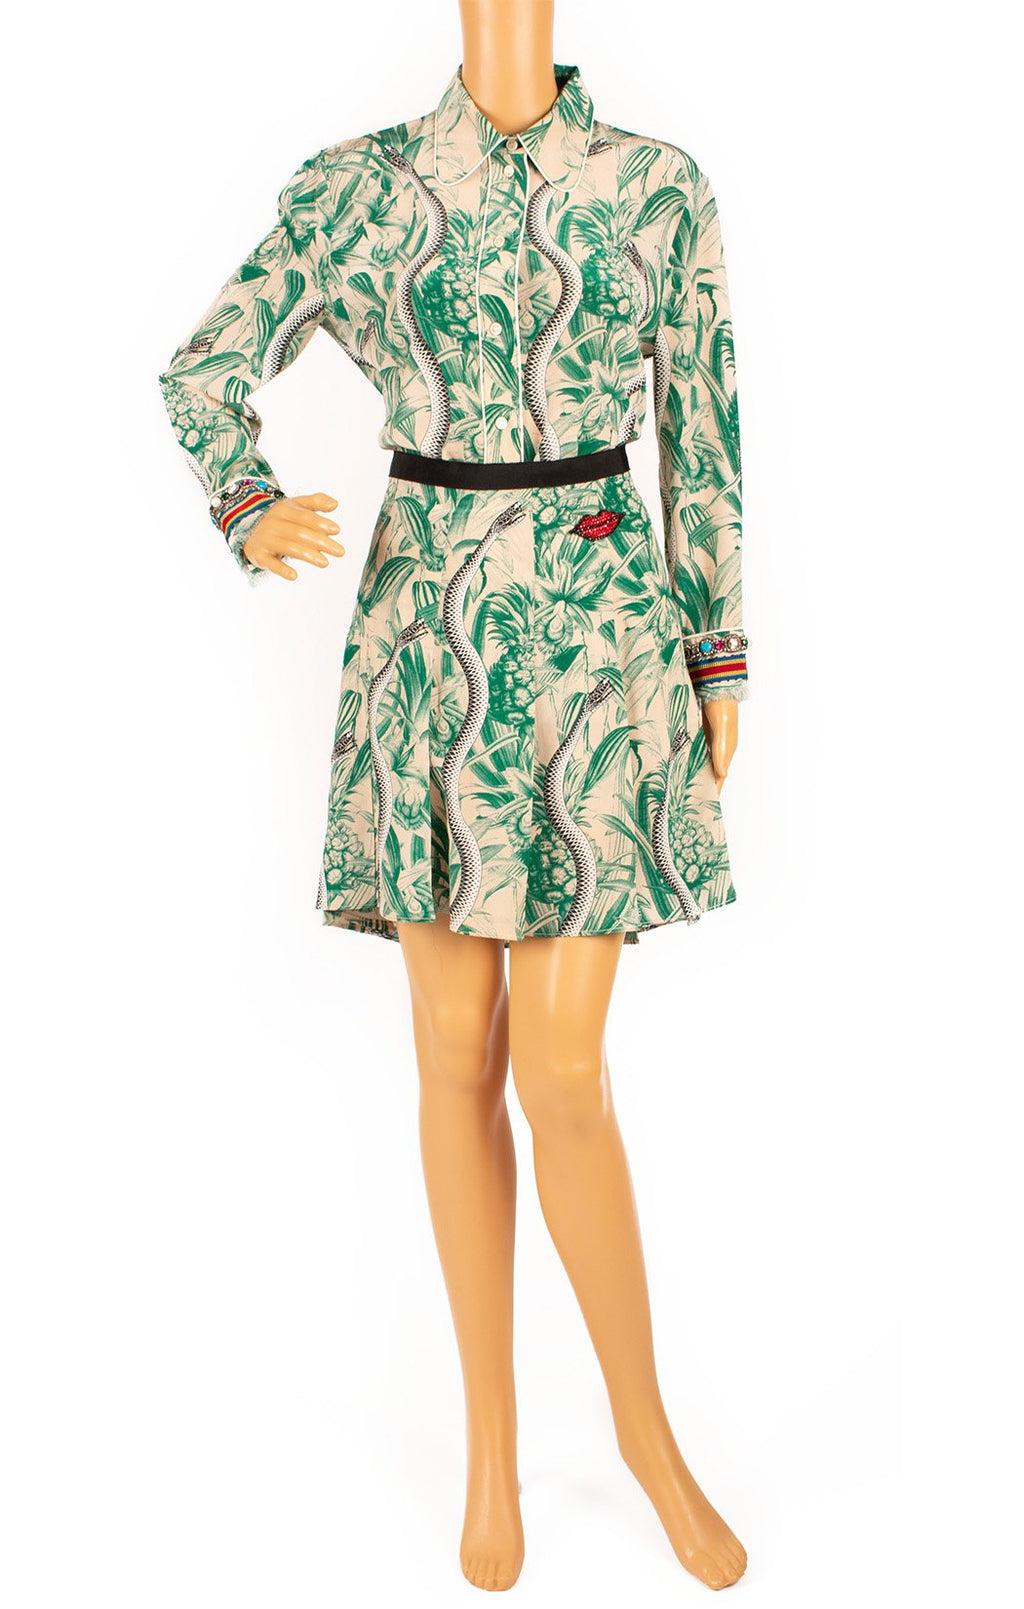 Front view of GUCCI  Matching blouse and skirt Size: Blouse - 44 (comparable to US 8) Skirt - 42 (comparable to US 6)